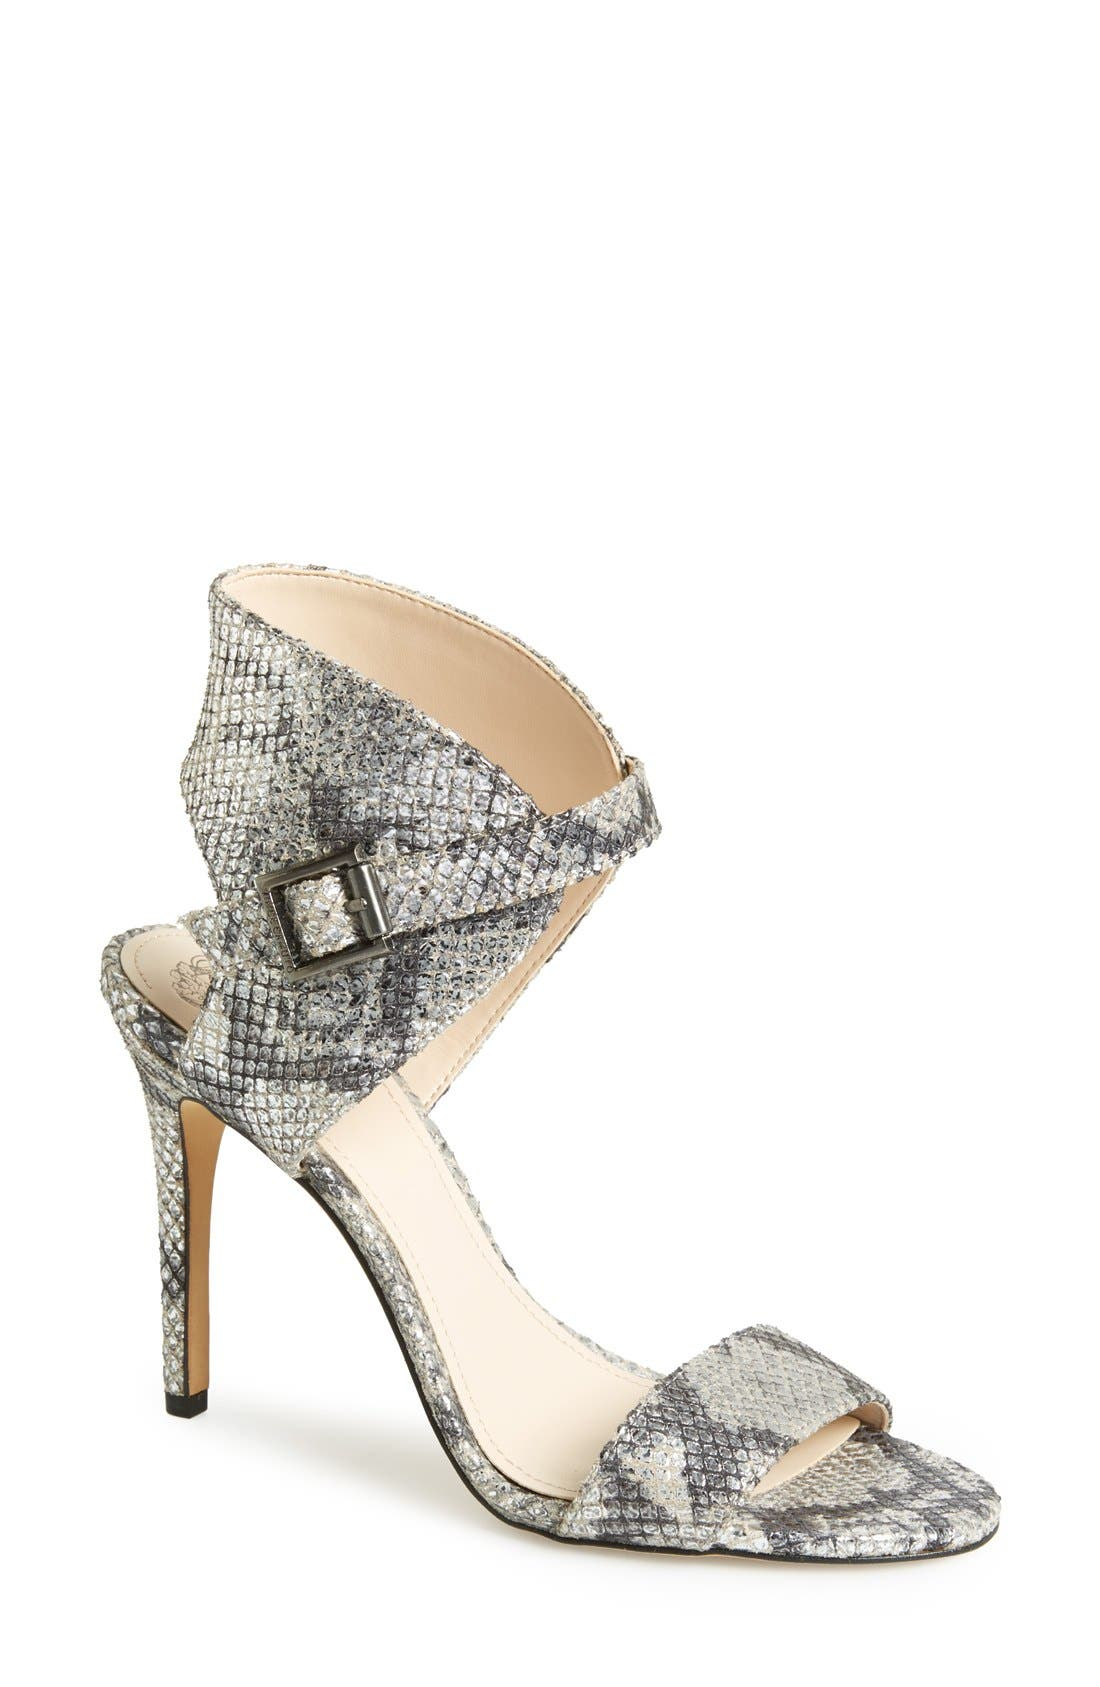 Alternate Image 1 Selected - Vince Camuto 'Tarma' Ankle Cuff Sandal (Women)